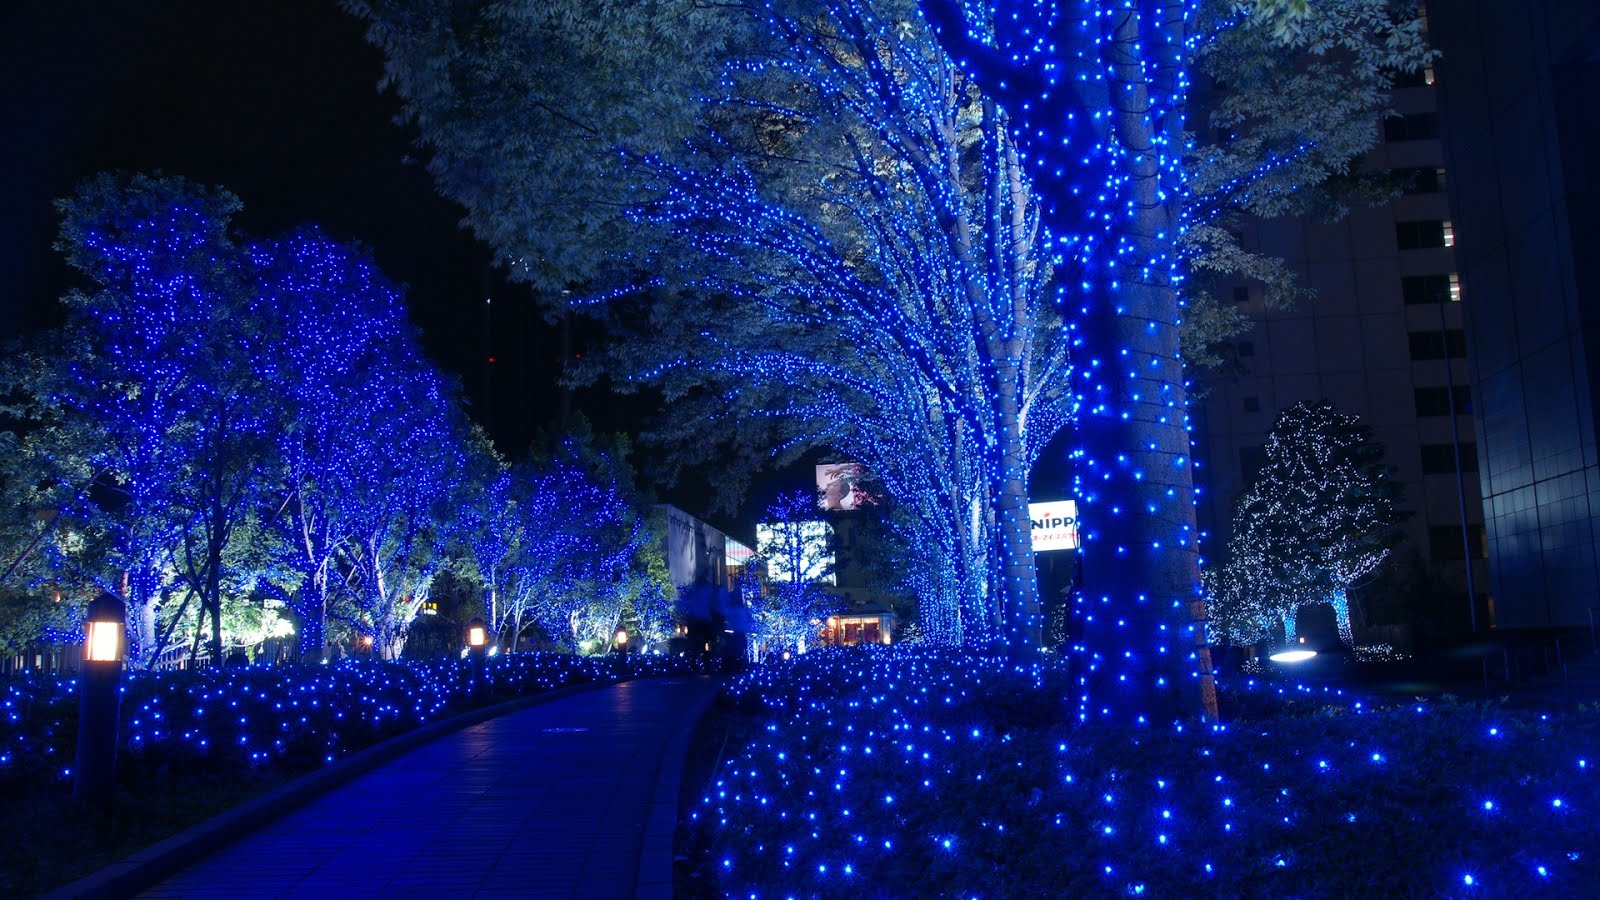 Free Wallpapers 1920x1080 HDTV: Christmas in Tokyo